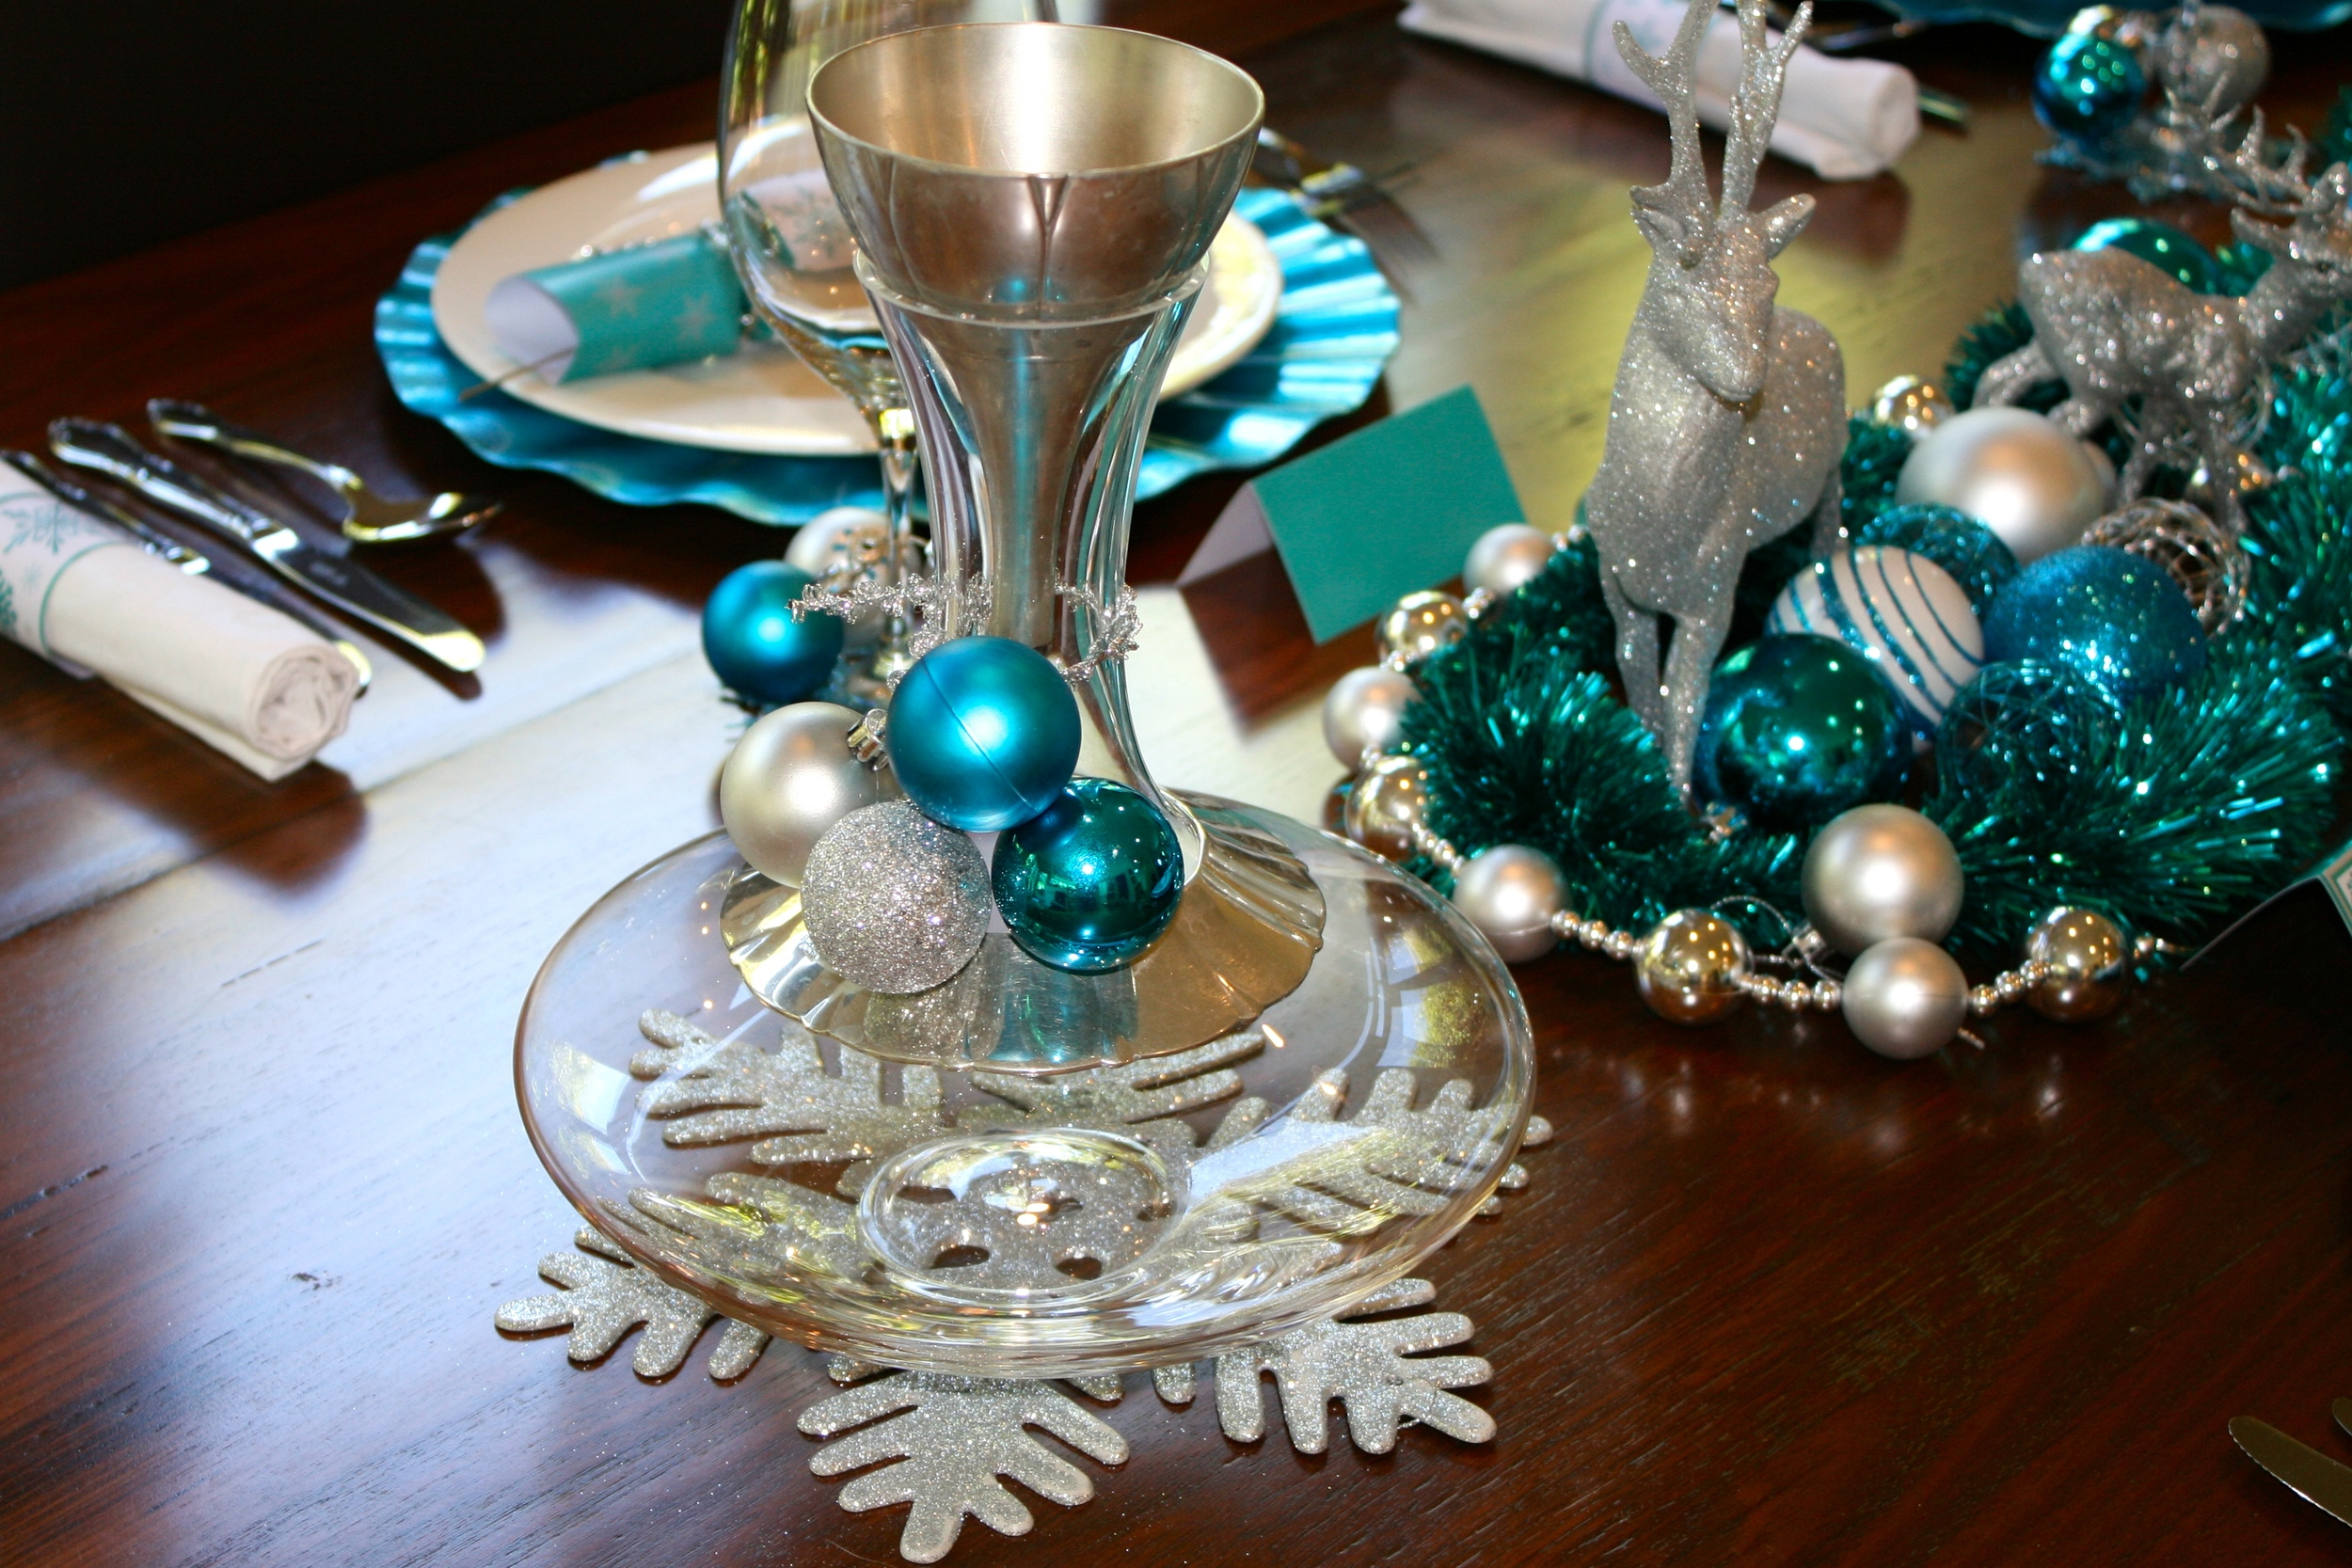 Wine decanter dressed with Baubles